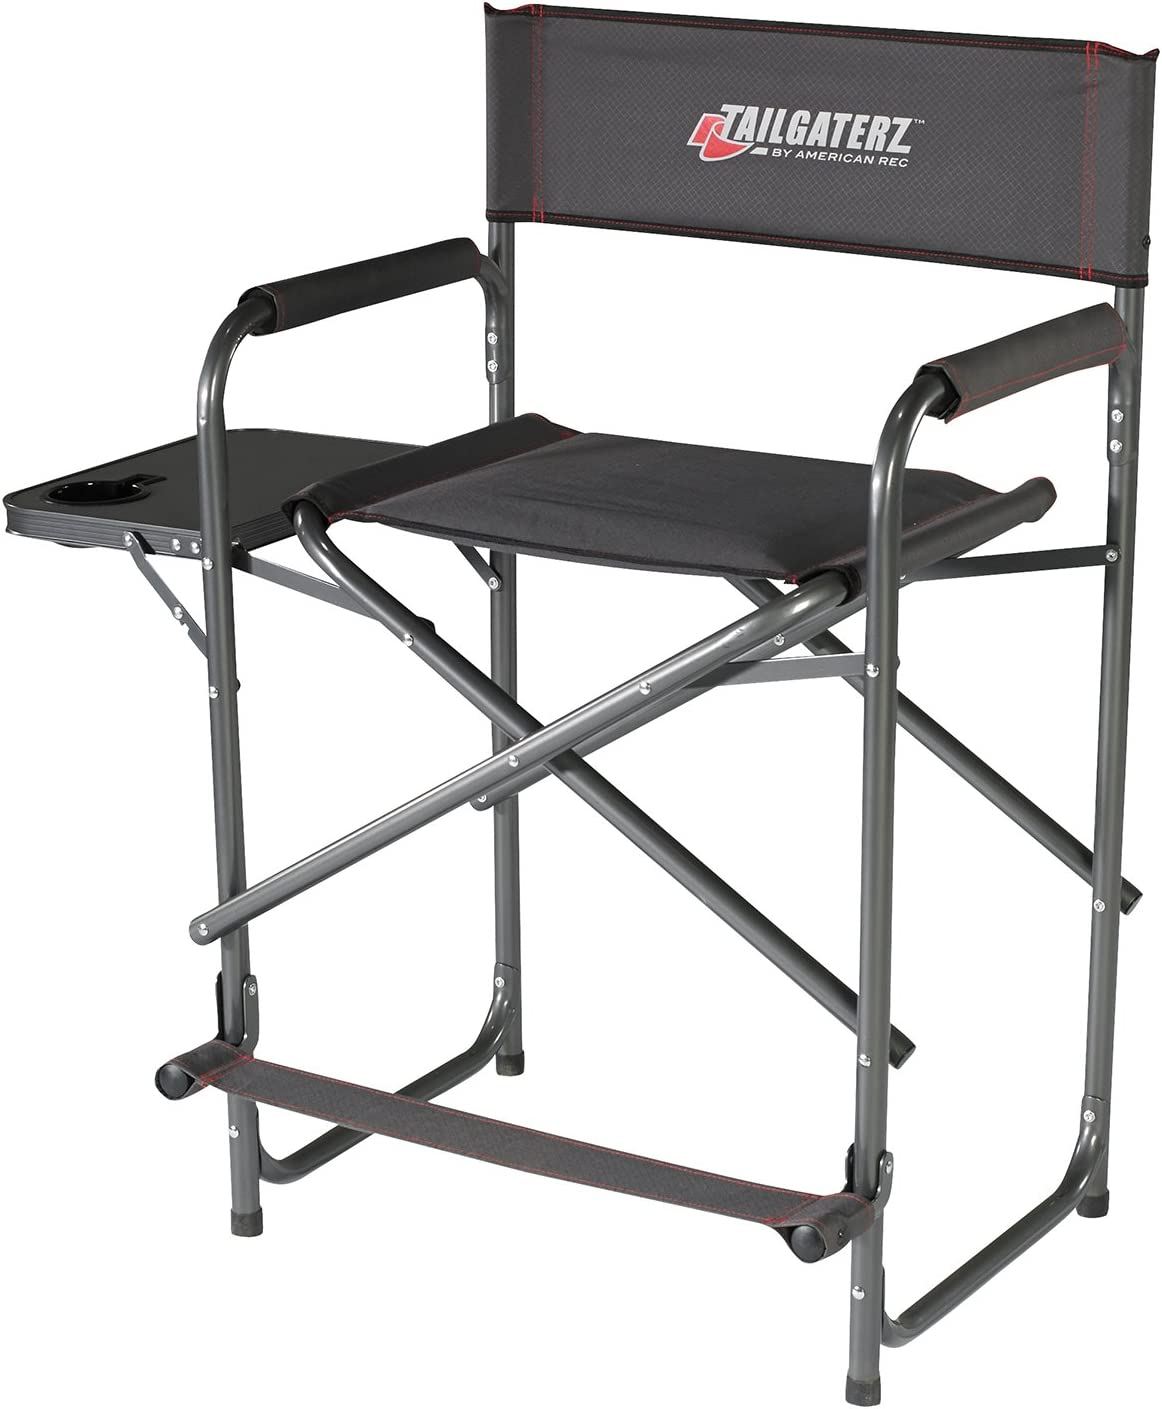 Tailgaterz Take-Out Seat Steel Chair with Side Table, Game Day Graphite